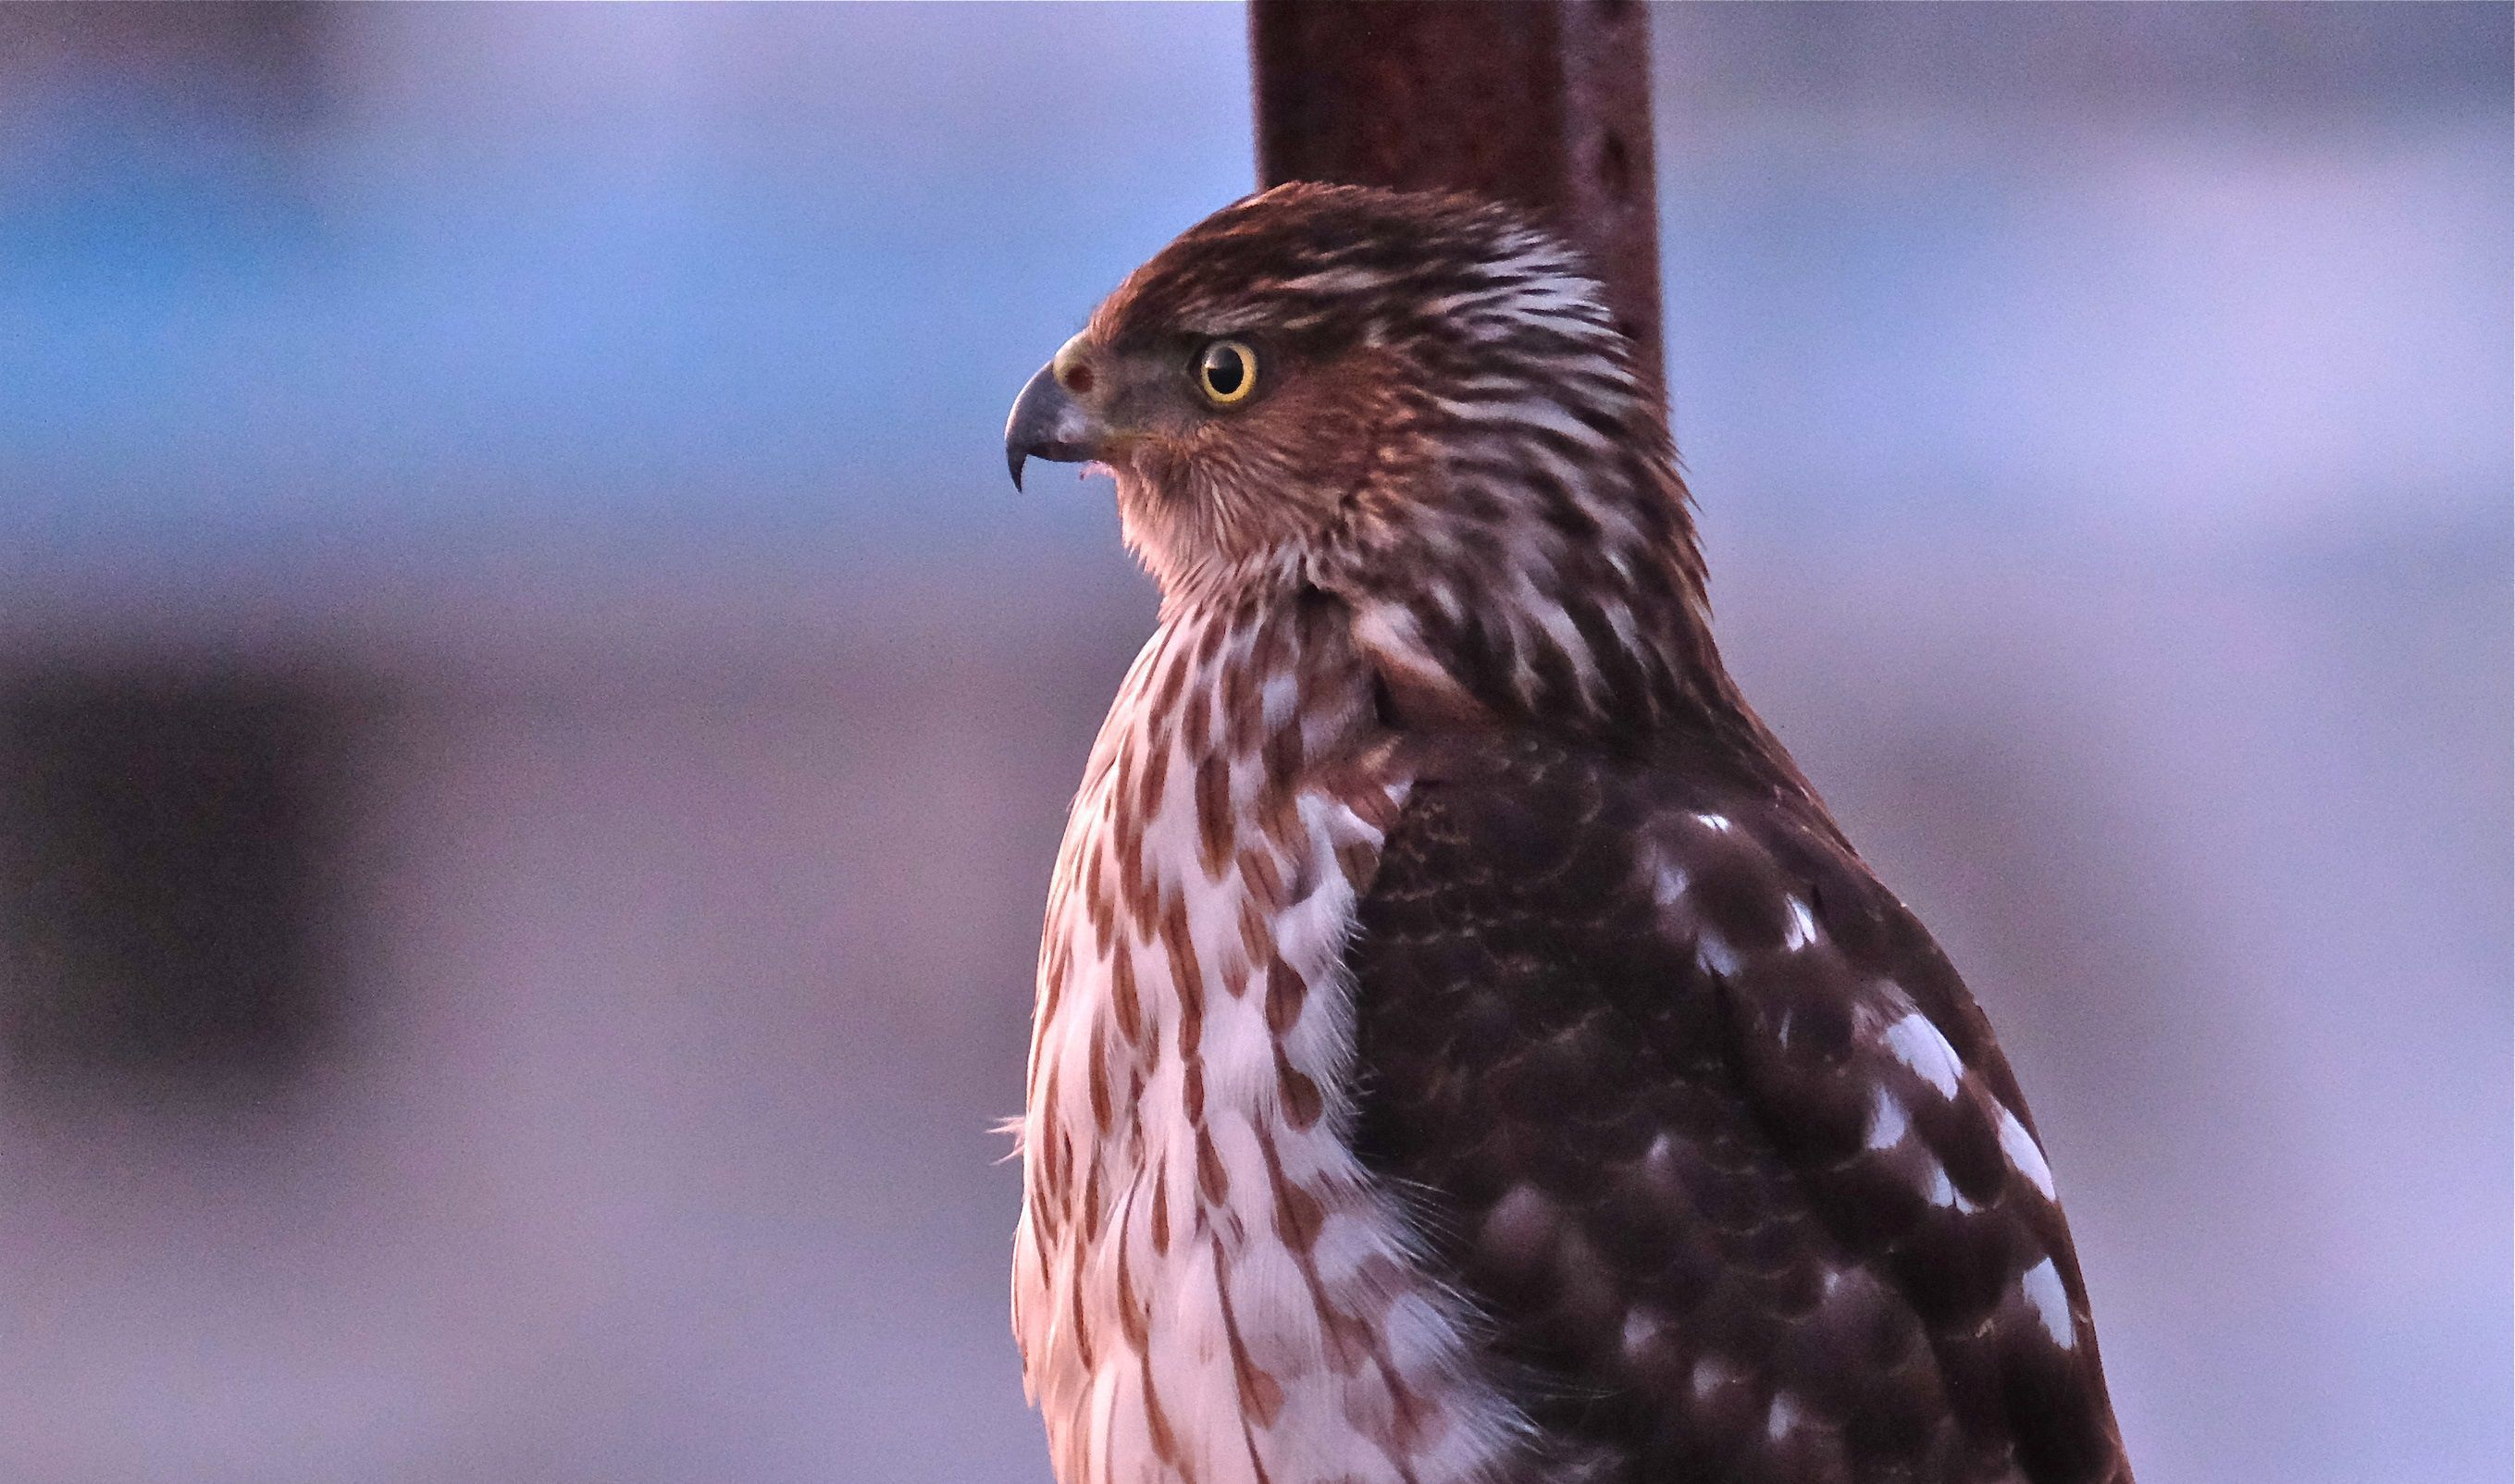 All Animals Hd Wallpapers Cooper S Hawk Wallpapers Backgrounds